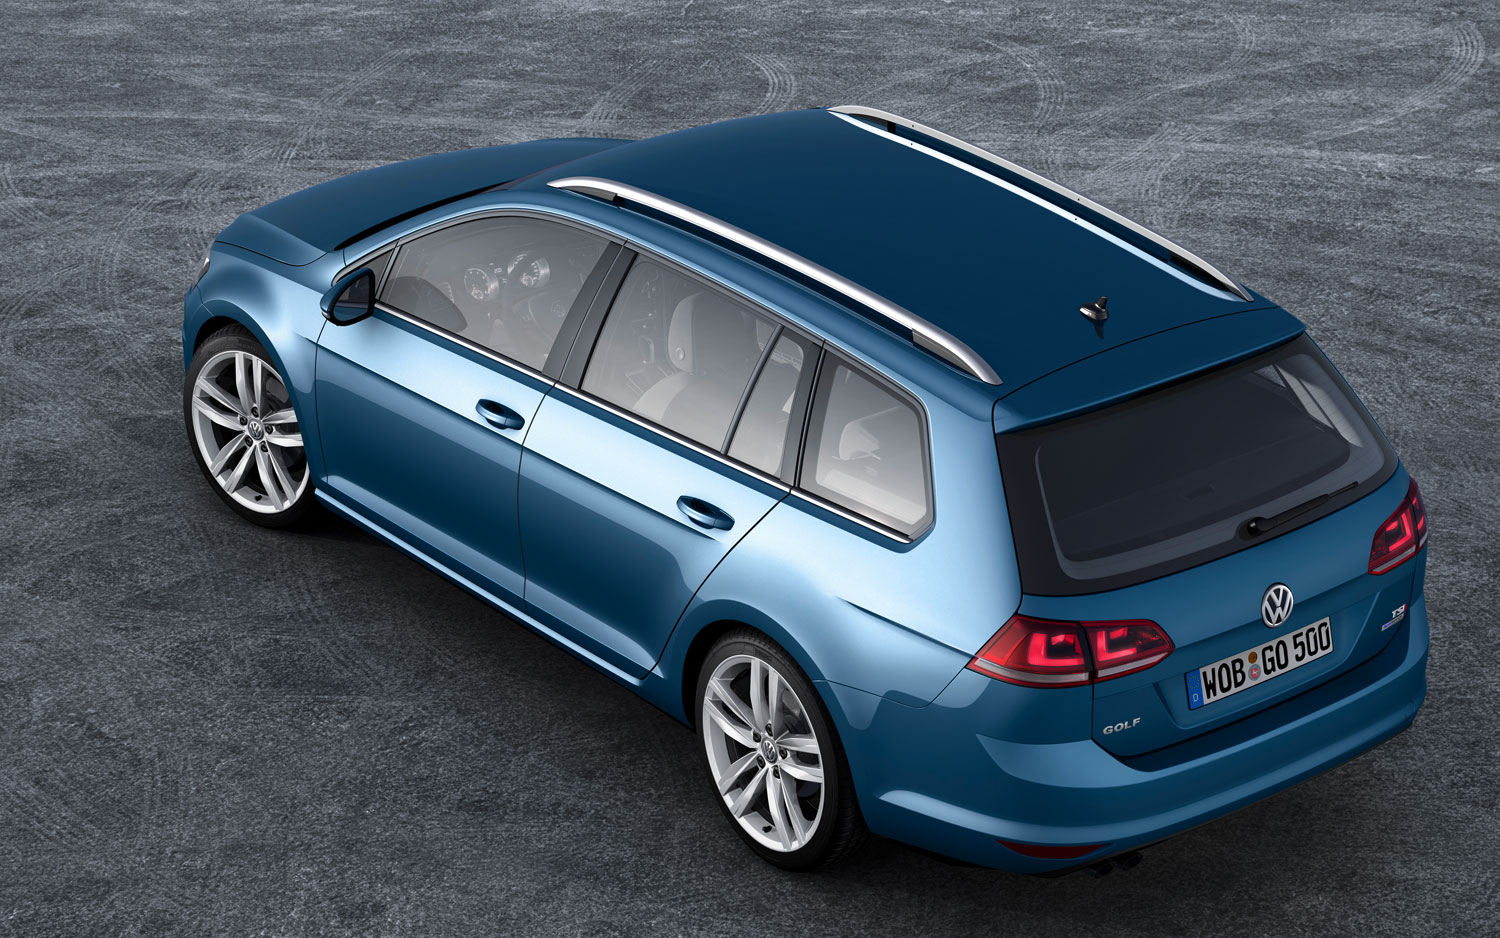 2014 Volkswagen Golf Variant Wagon Top View1